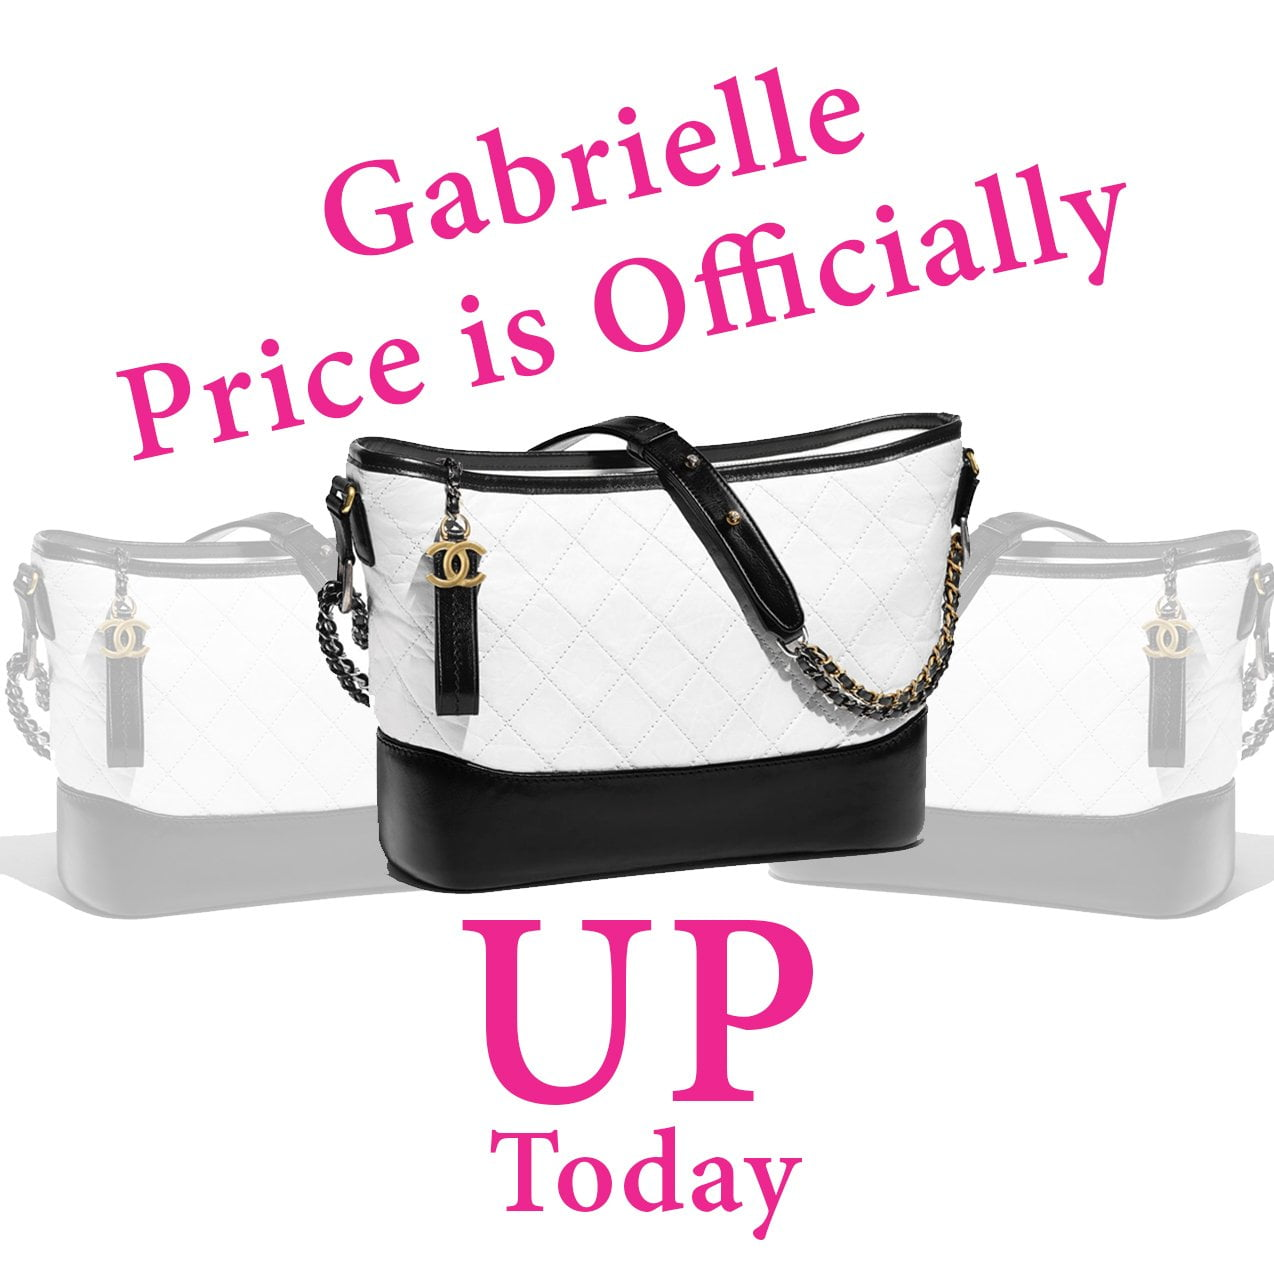 47dd4bad42df It's Official: Chanel Gabrielle Prices are Up - PurseBop